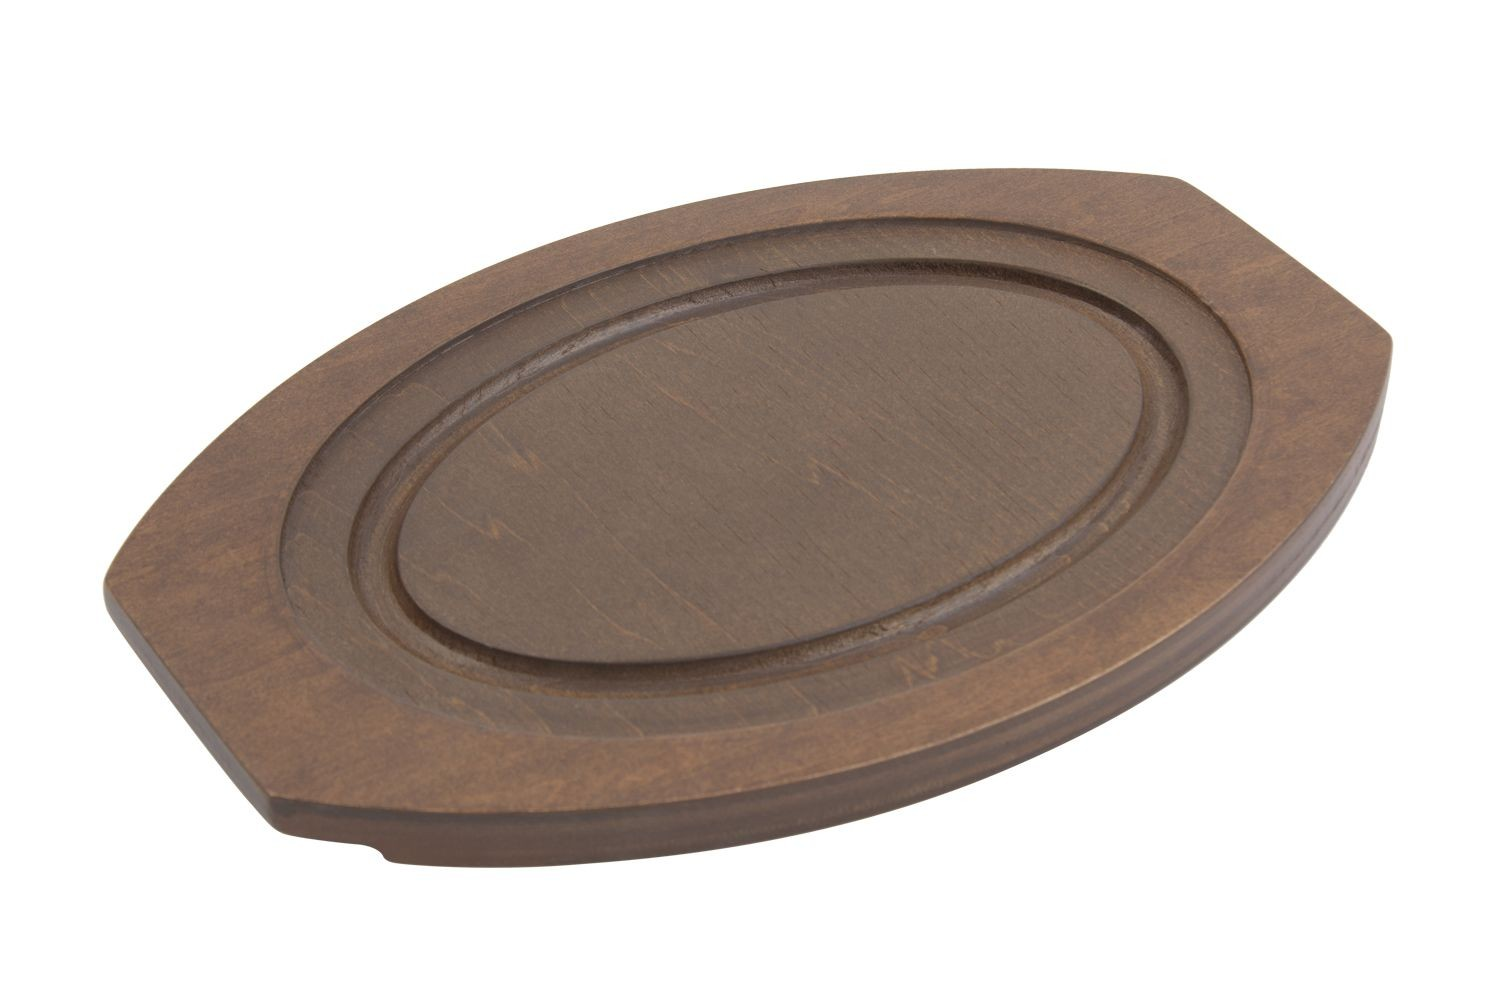 "Bon Chef 82060 Wood Underliner for Sizzle Plate, 11"" x 12 3/4"" x 1 1/2"", Set of 12"